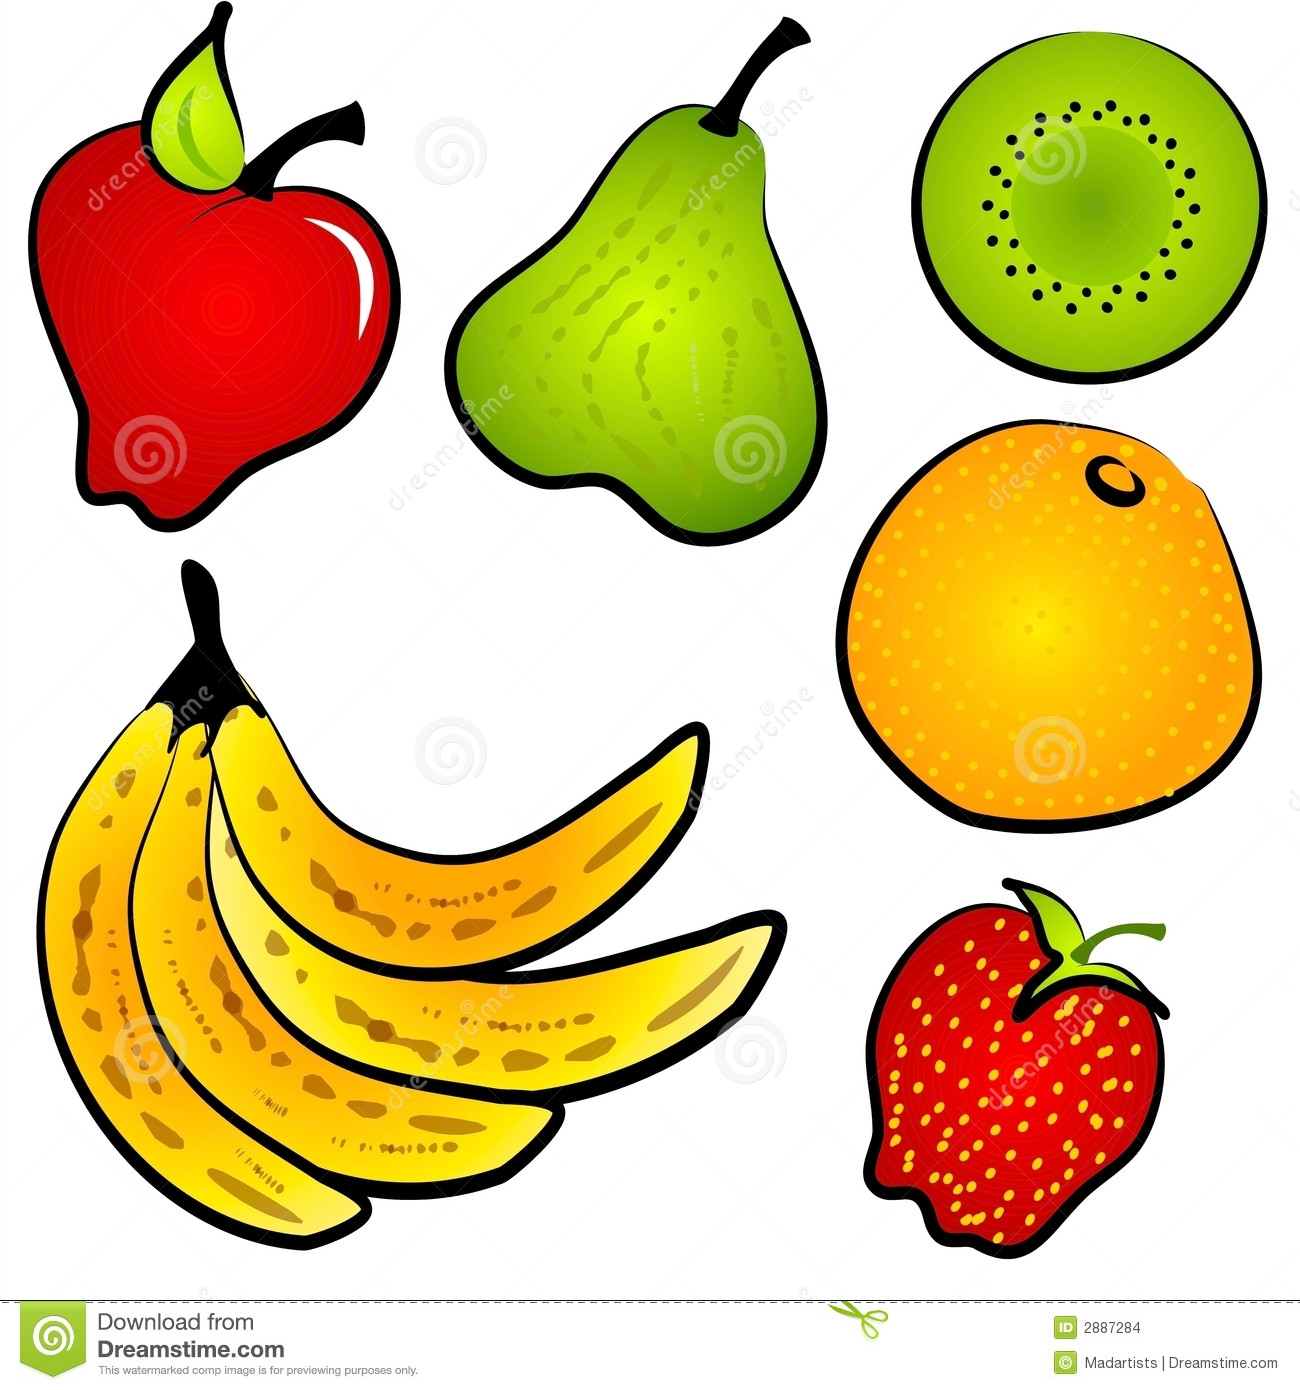 Healthy Snacks Clipart  Healthy Food Clipart – Cliparts